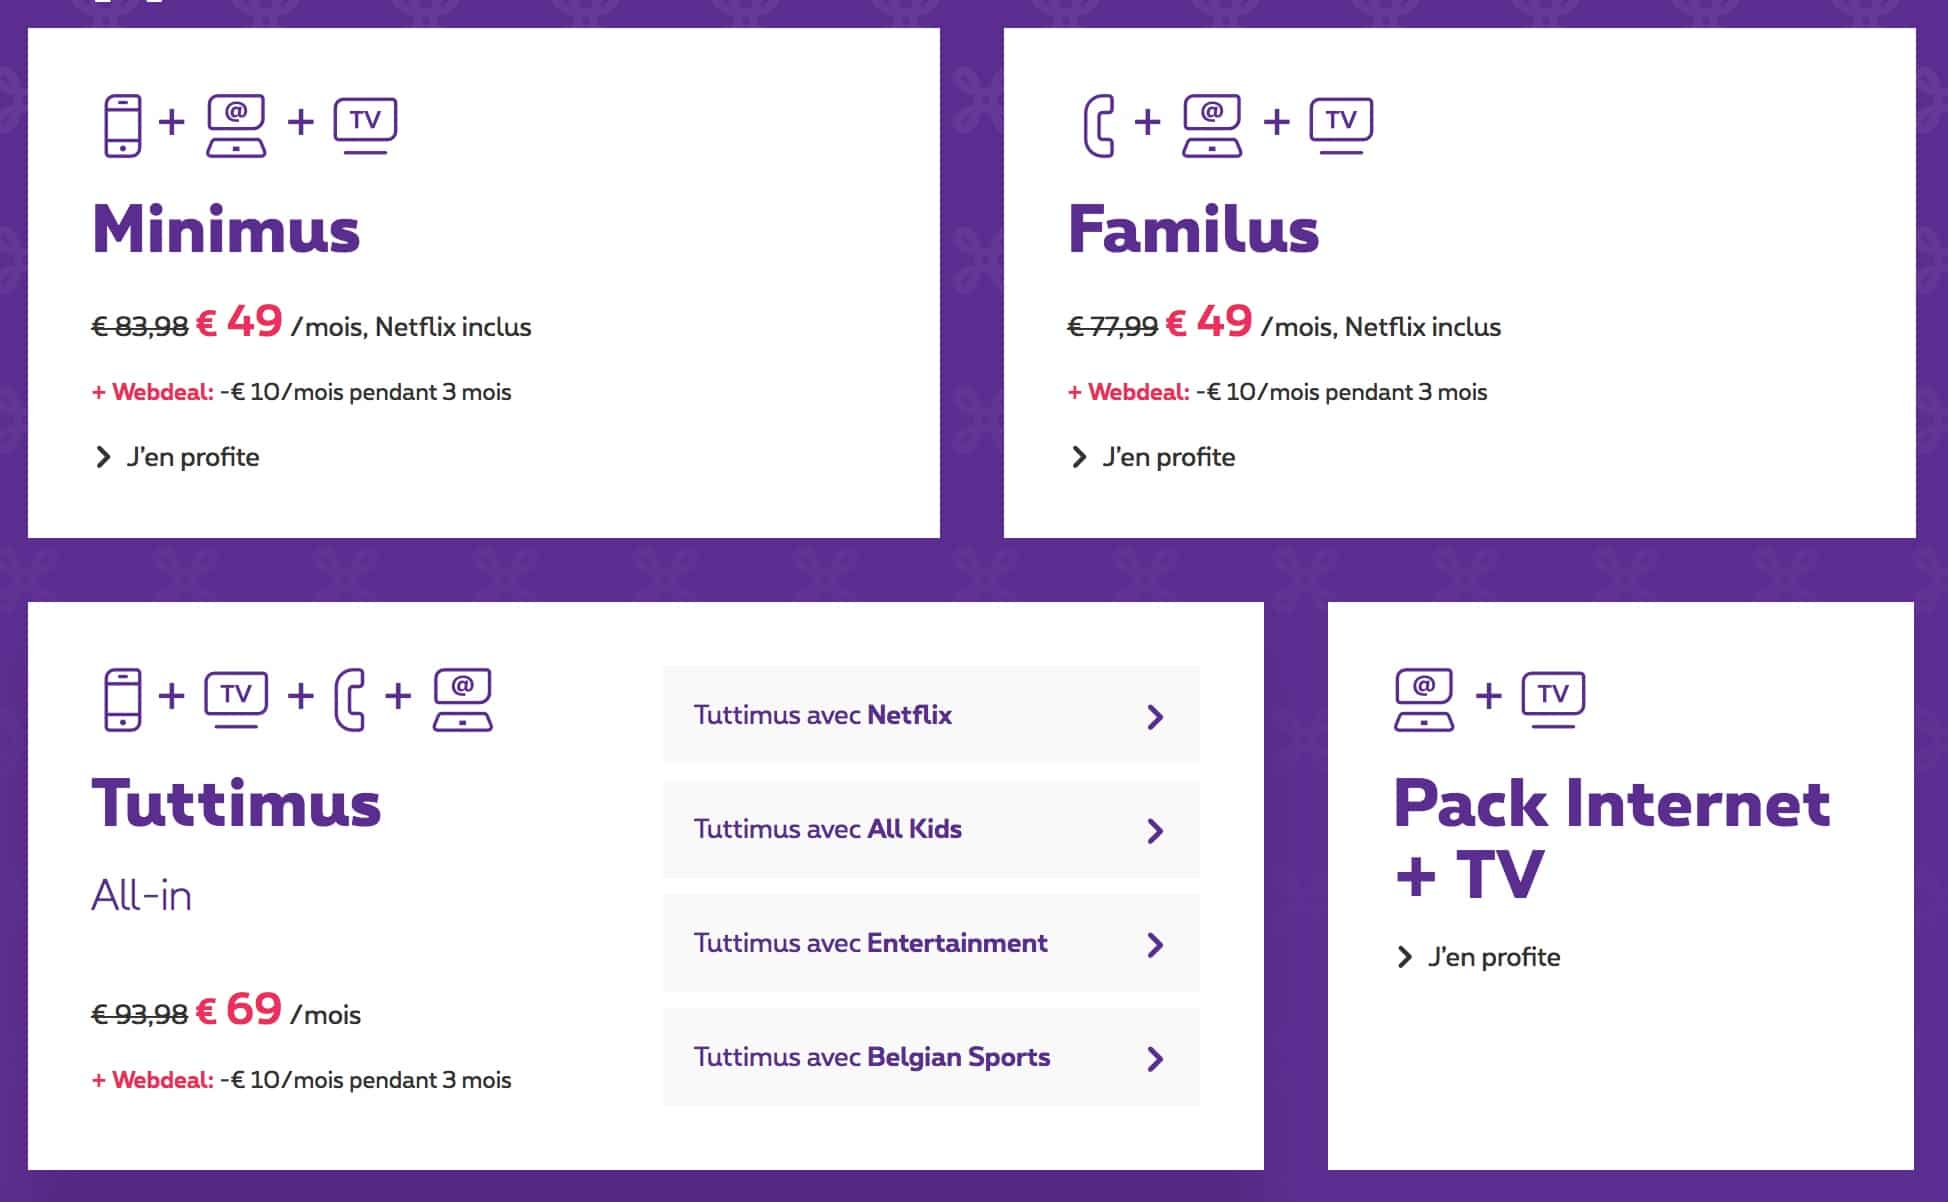 pack internet tv proximus promo